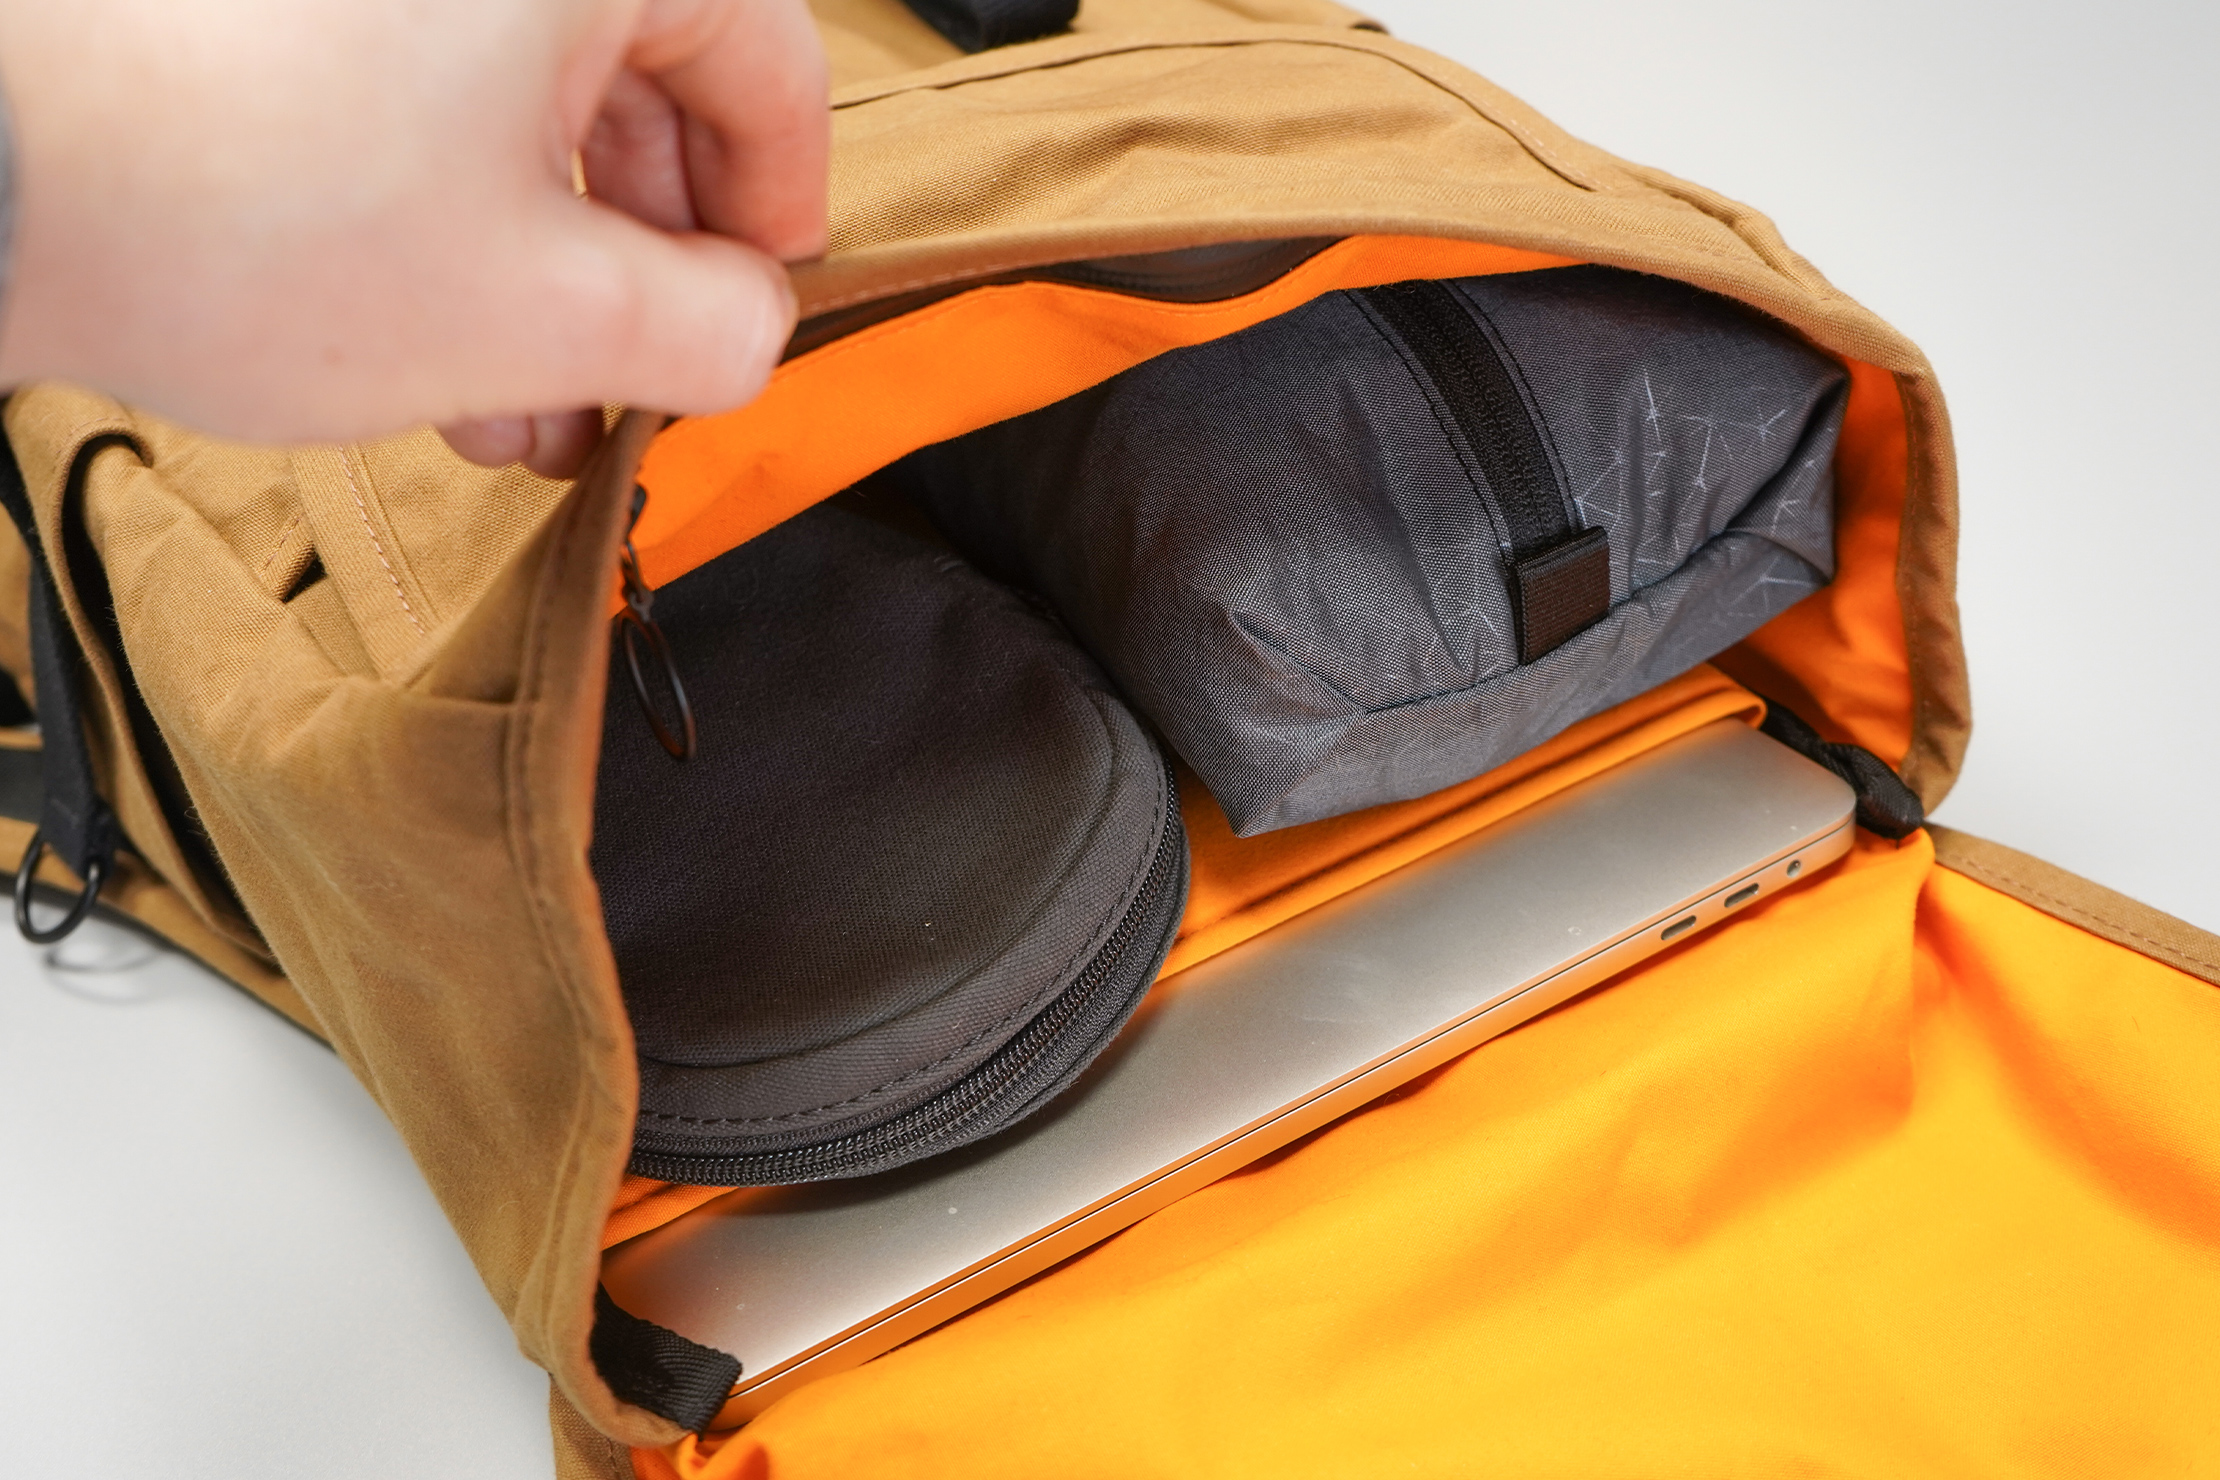 Trakke Bannoch | Bright orange fabric makes seeing inside all too easy and convenient